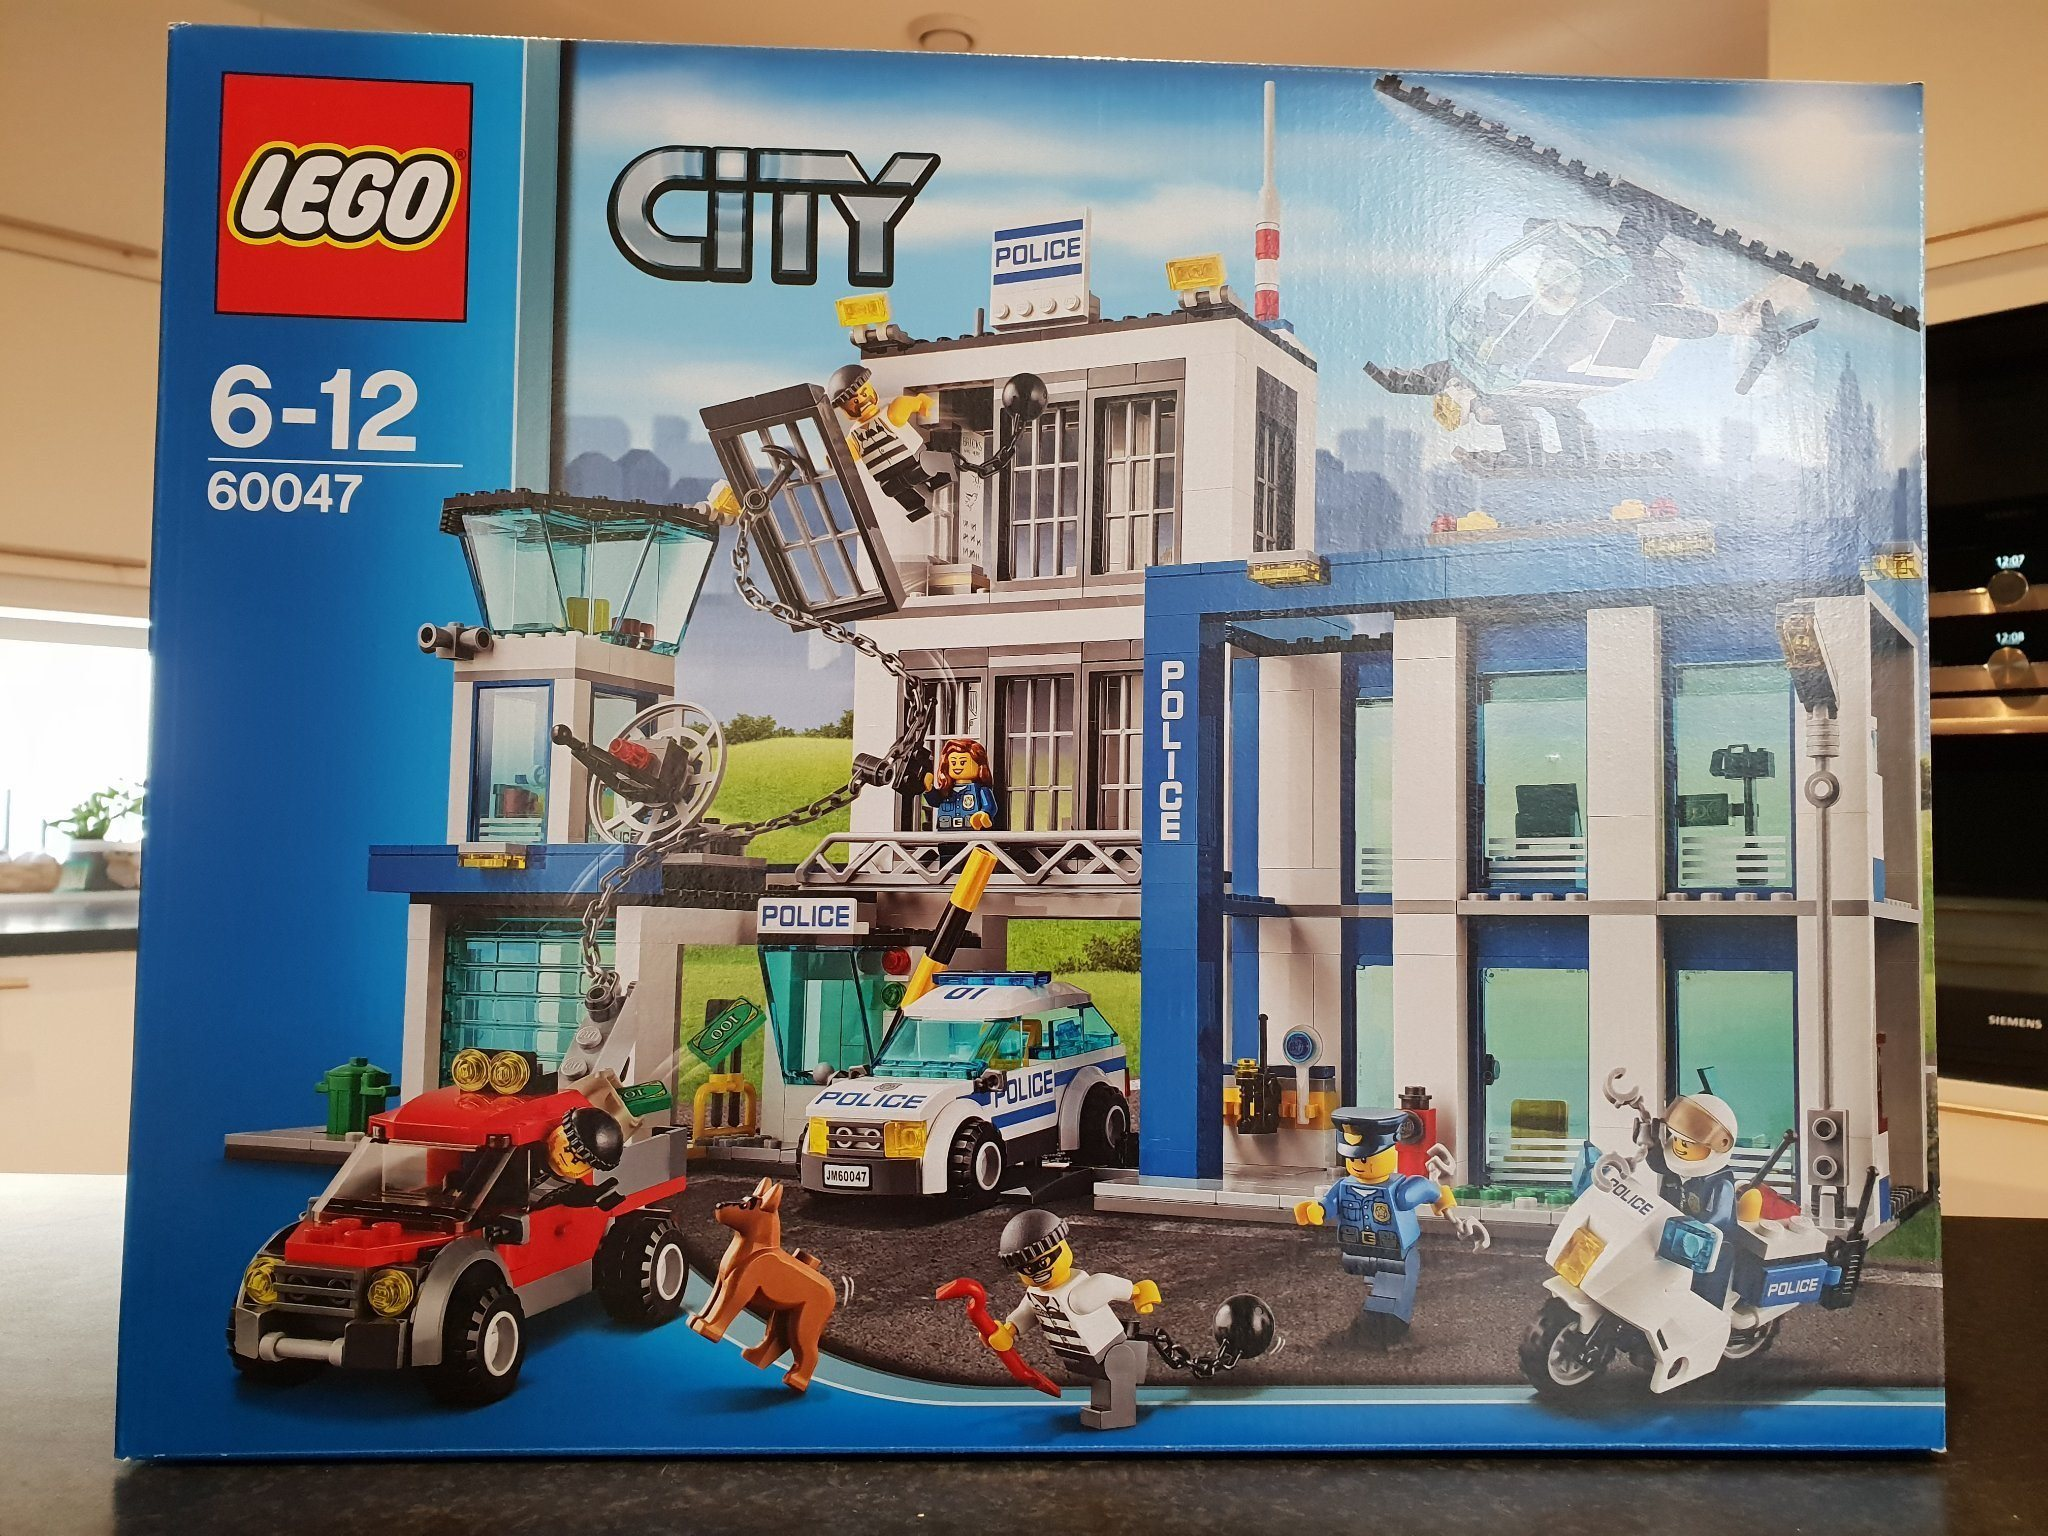 Ny oöppnad LEGO City 60047 Polisstation